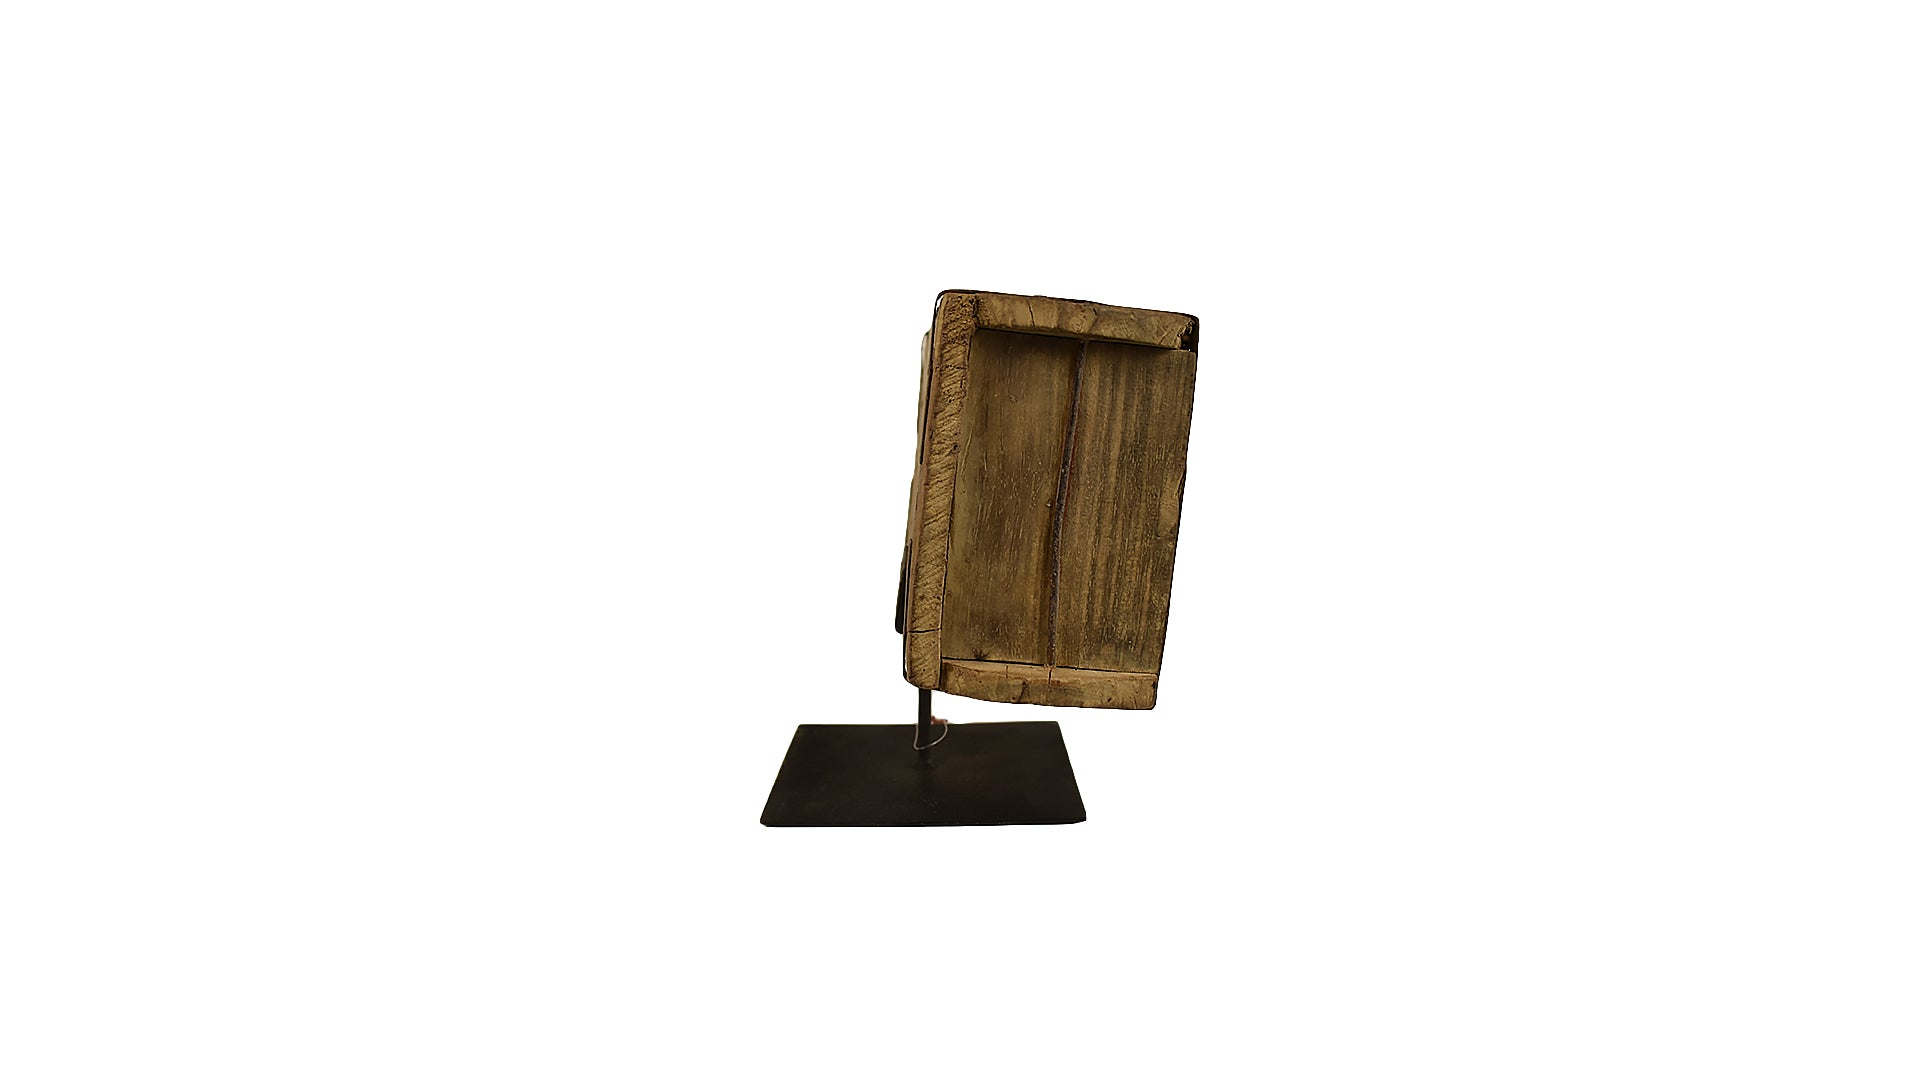 Wooden Brick Mold on Stand